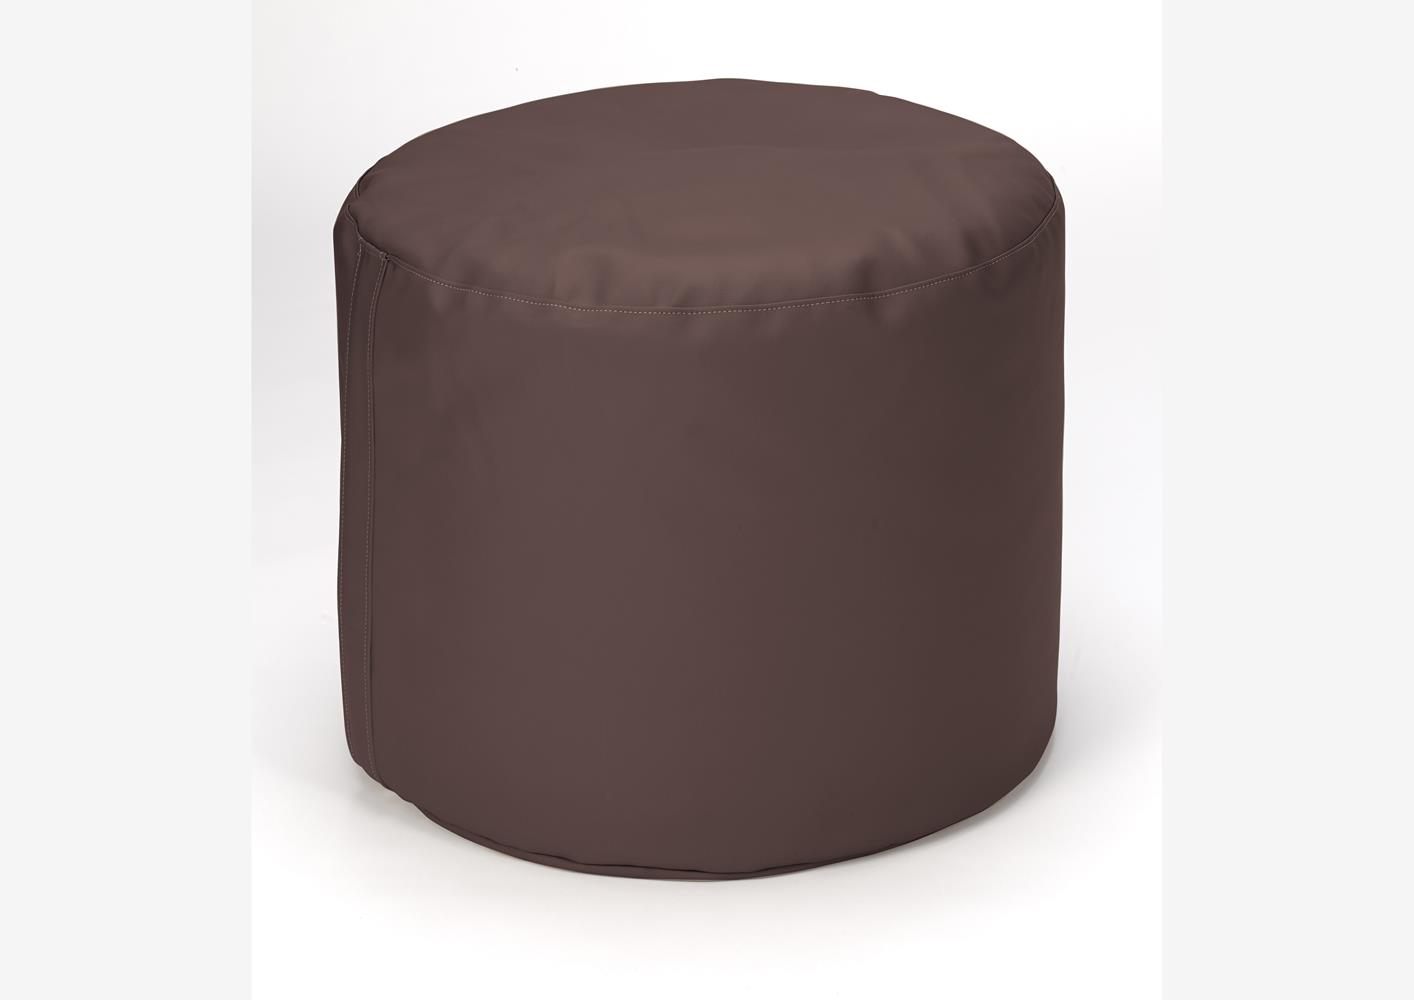 acheter votre pouf rond moderne chocolat chez simeuble. Black Bedroom Furniture Sets. Home Design Ideas